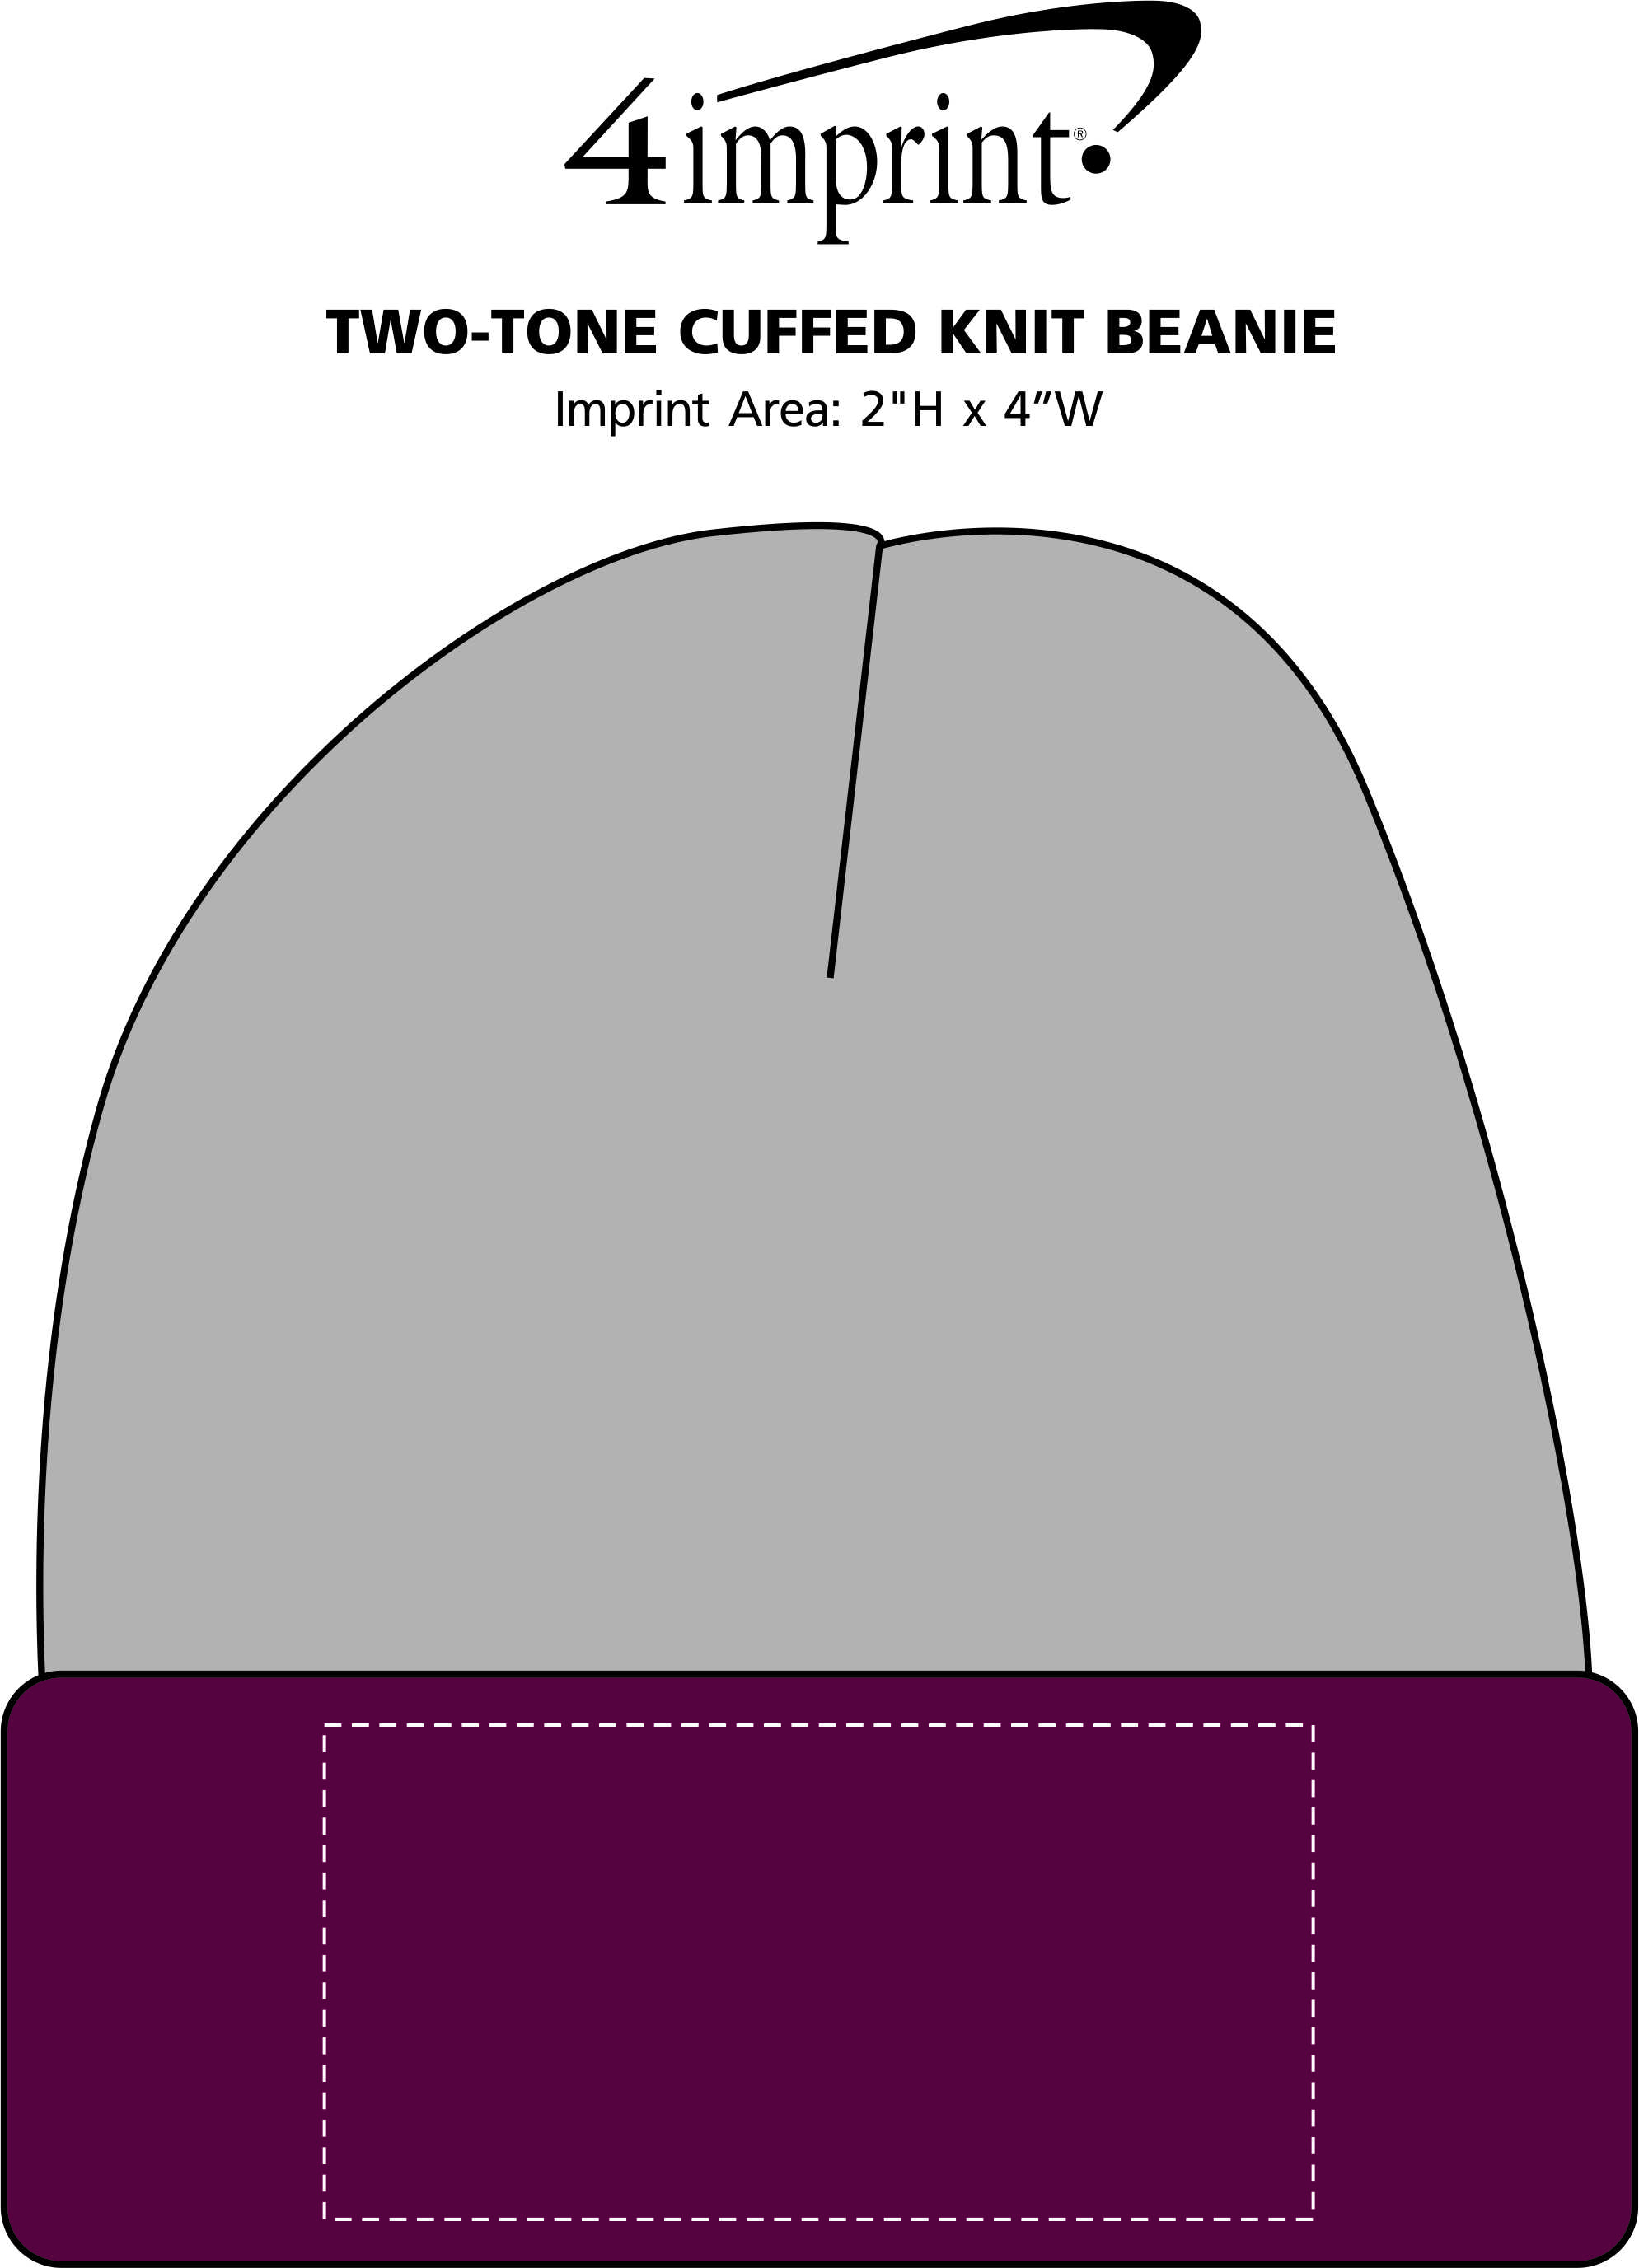 Imprint Area of Two-Tone Cuffed Knit Beanie